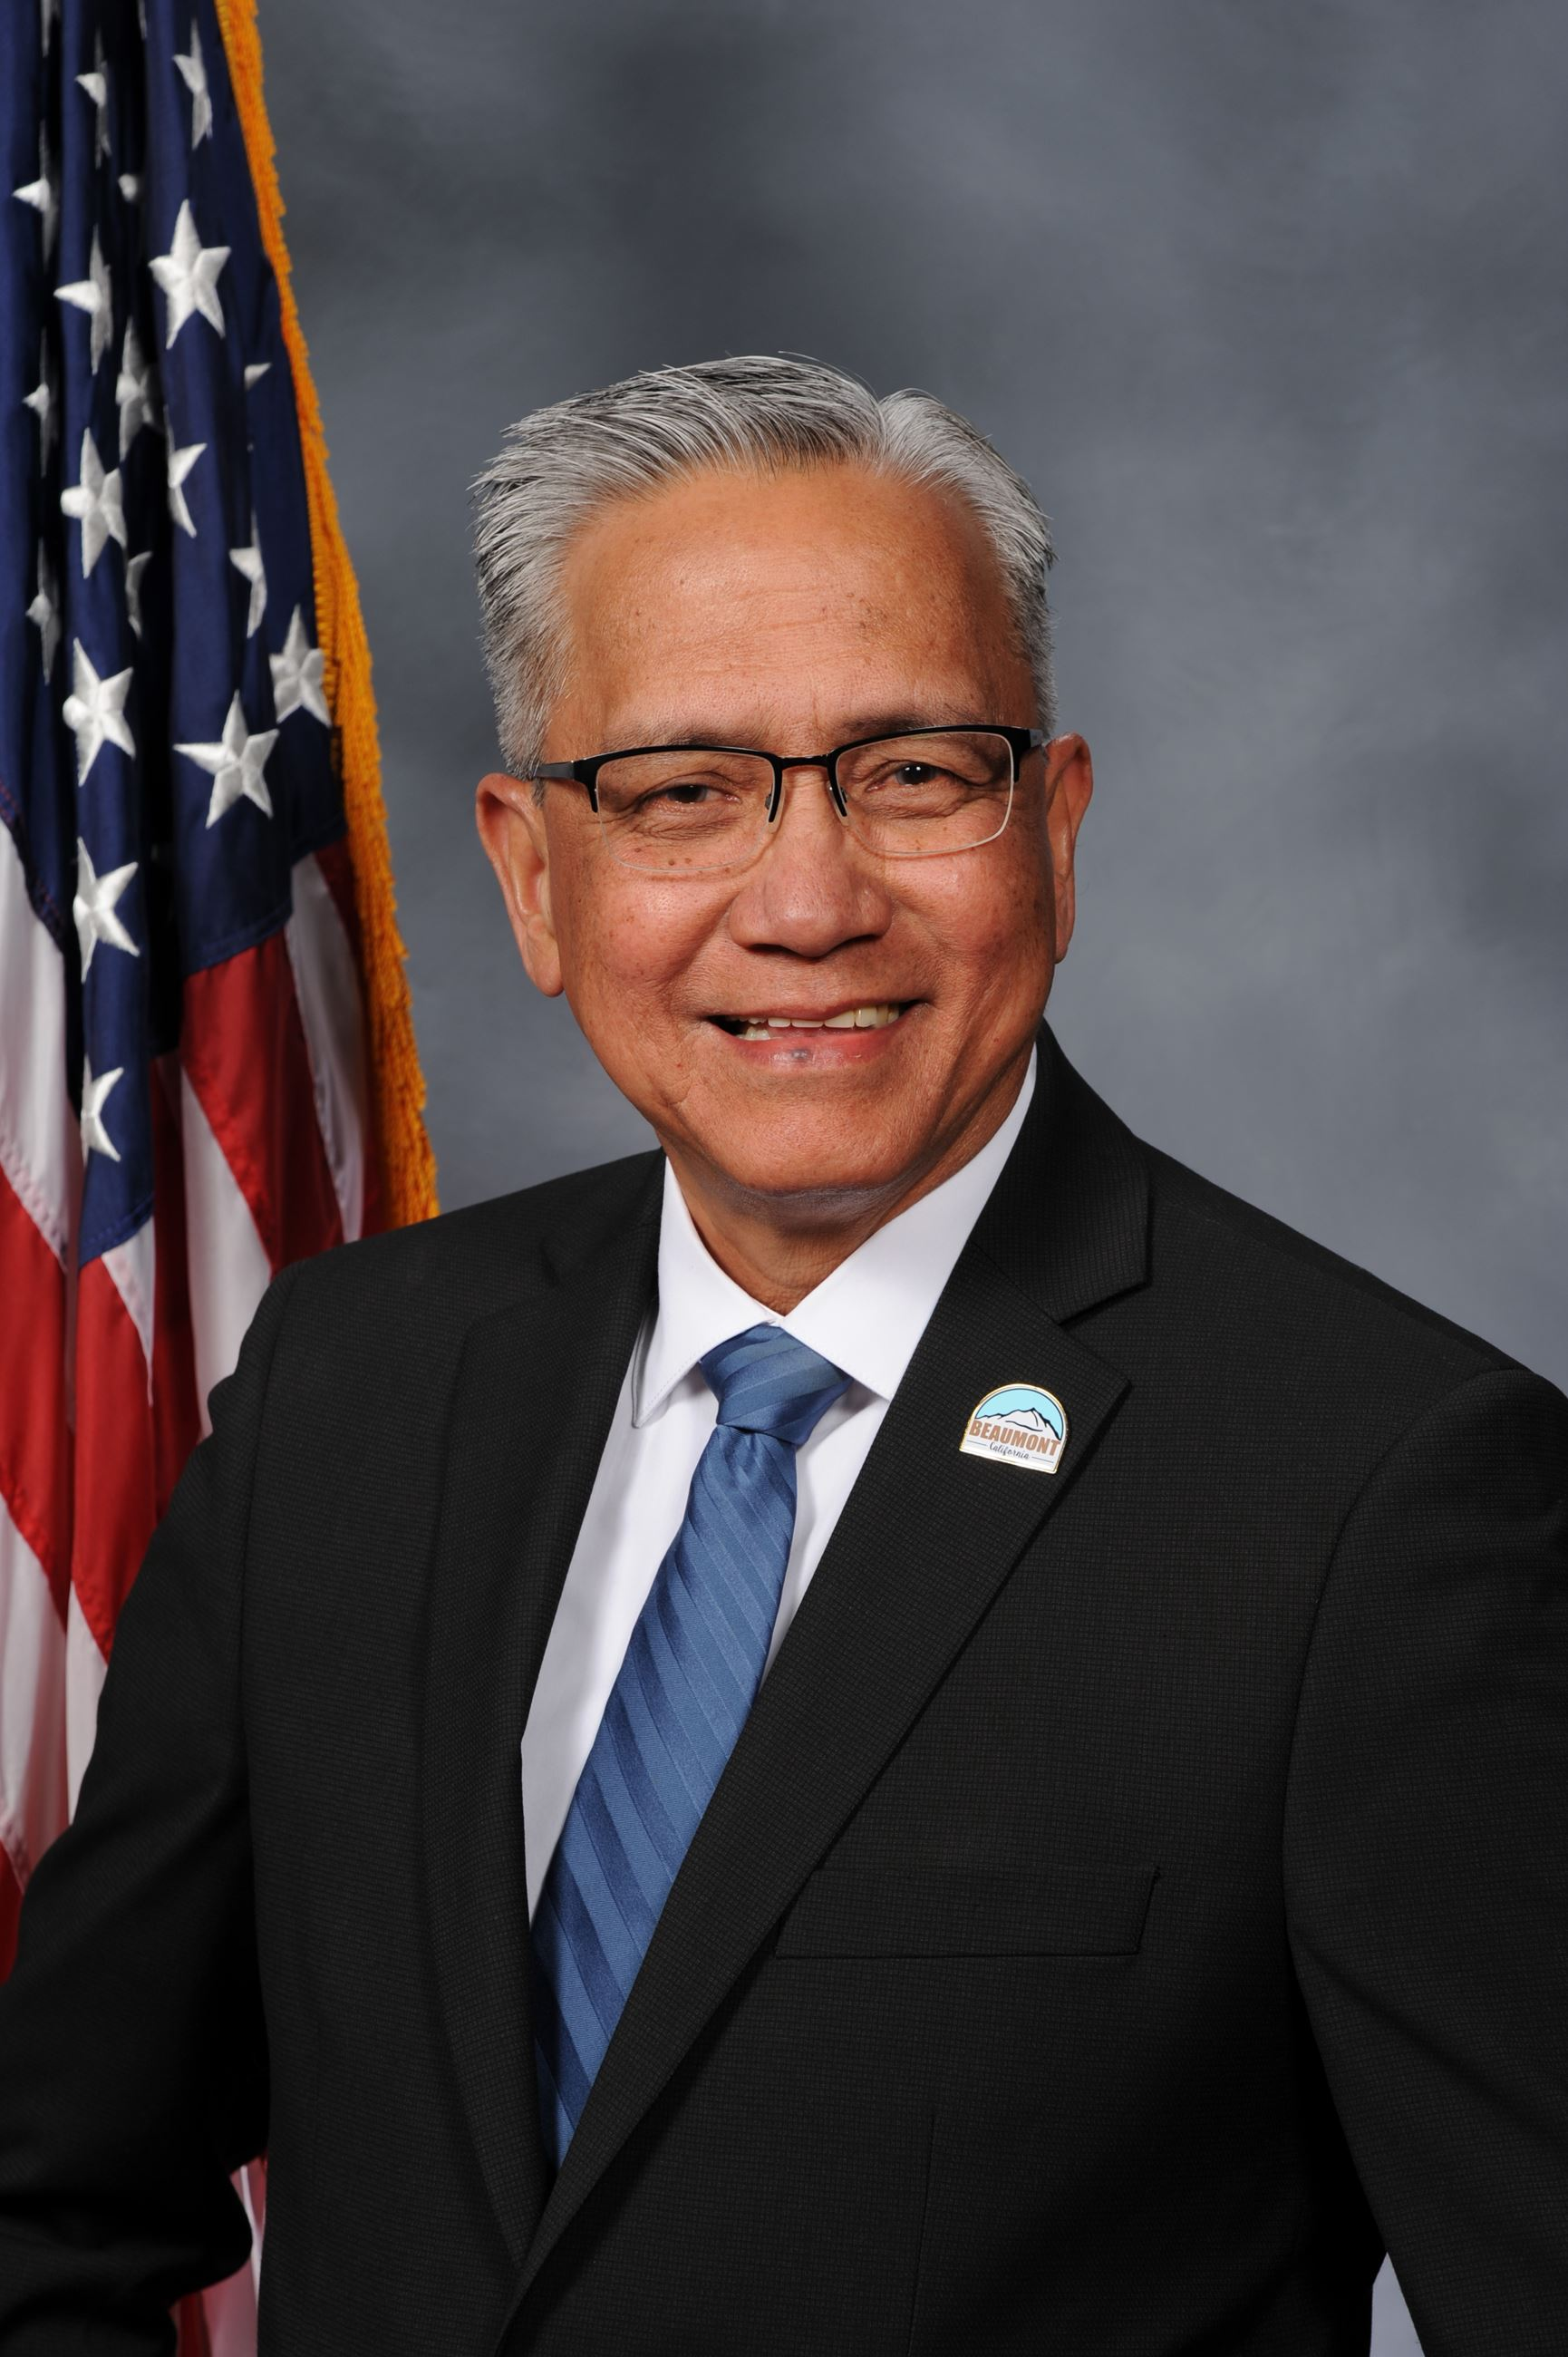 Photo of Councilmember Rey SJ Santos